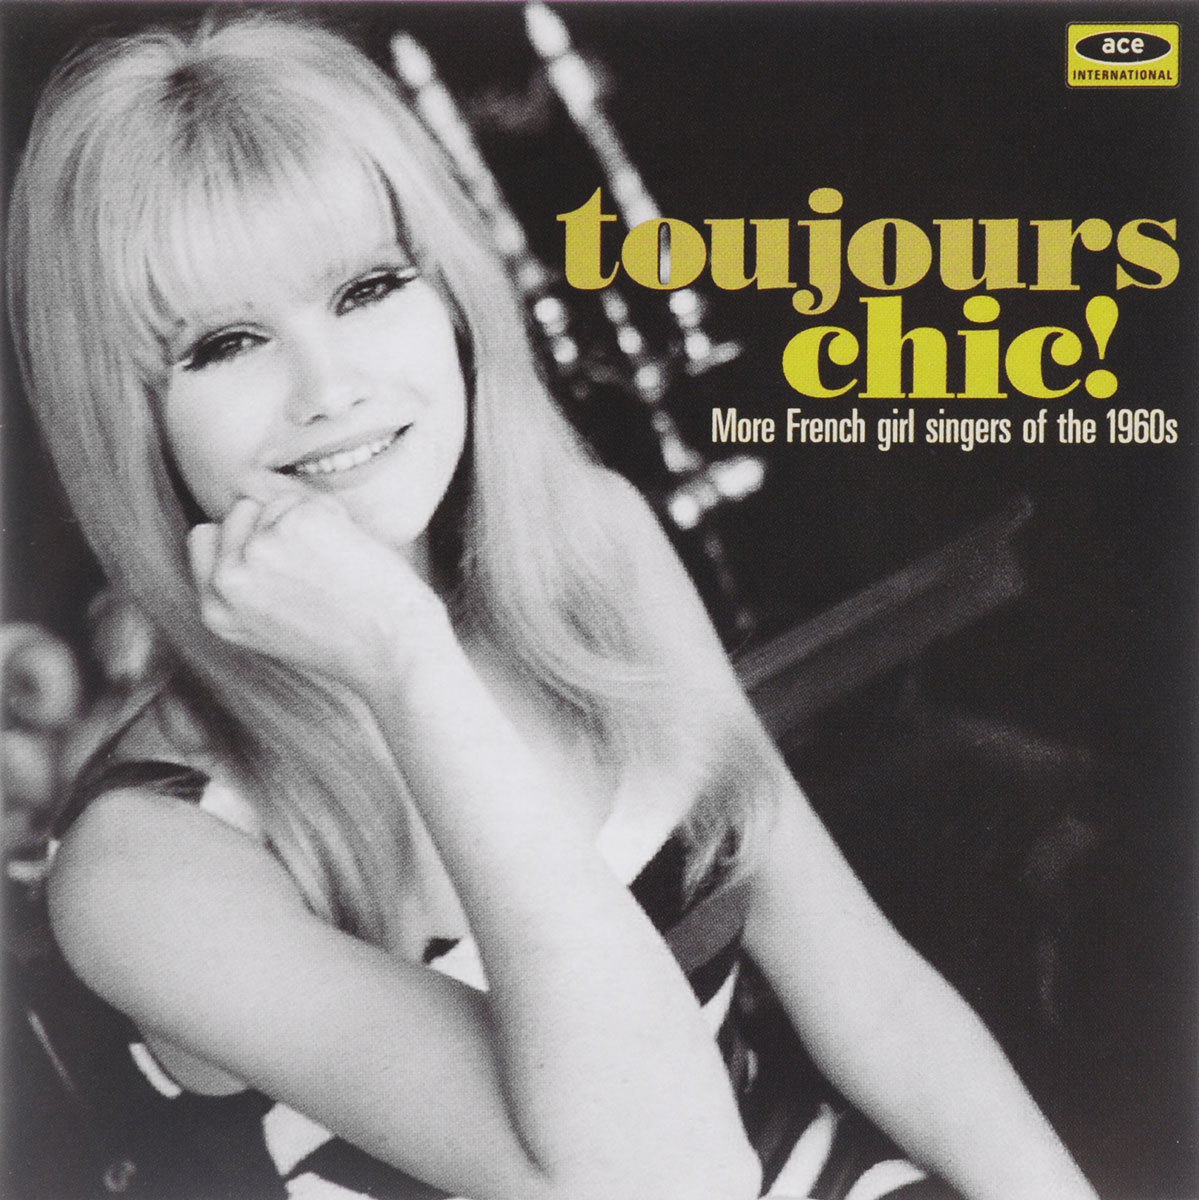 Toujours Chic! More French Girl Singers Of The 1960s c est chic french girl singers of the 1960s